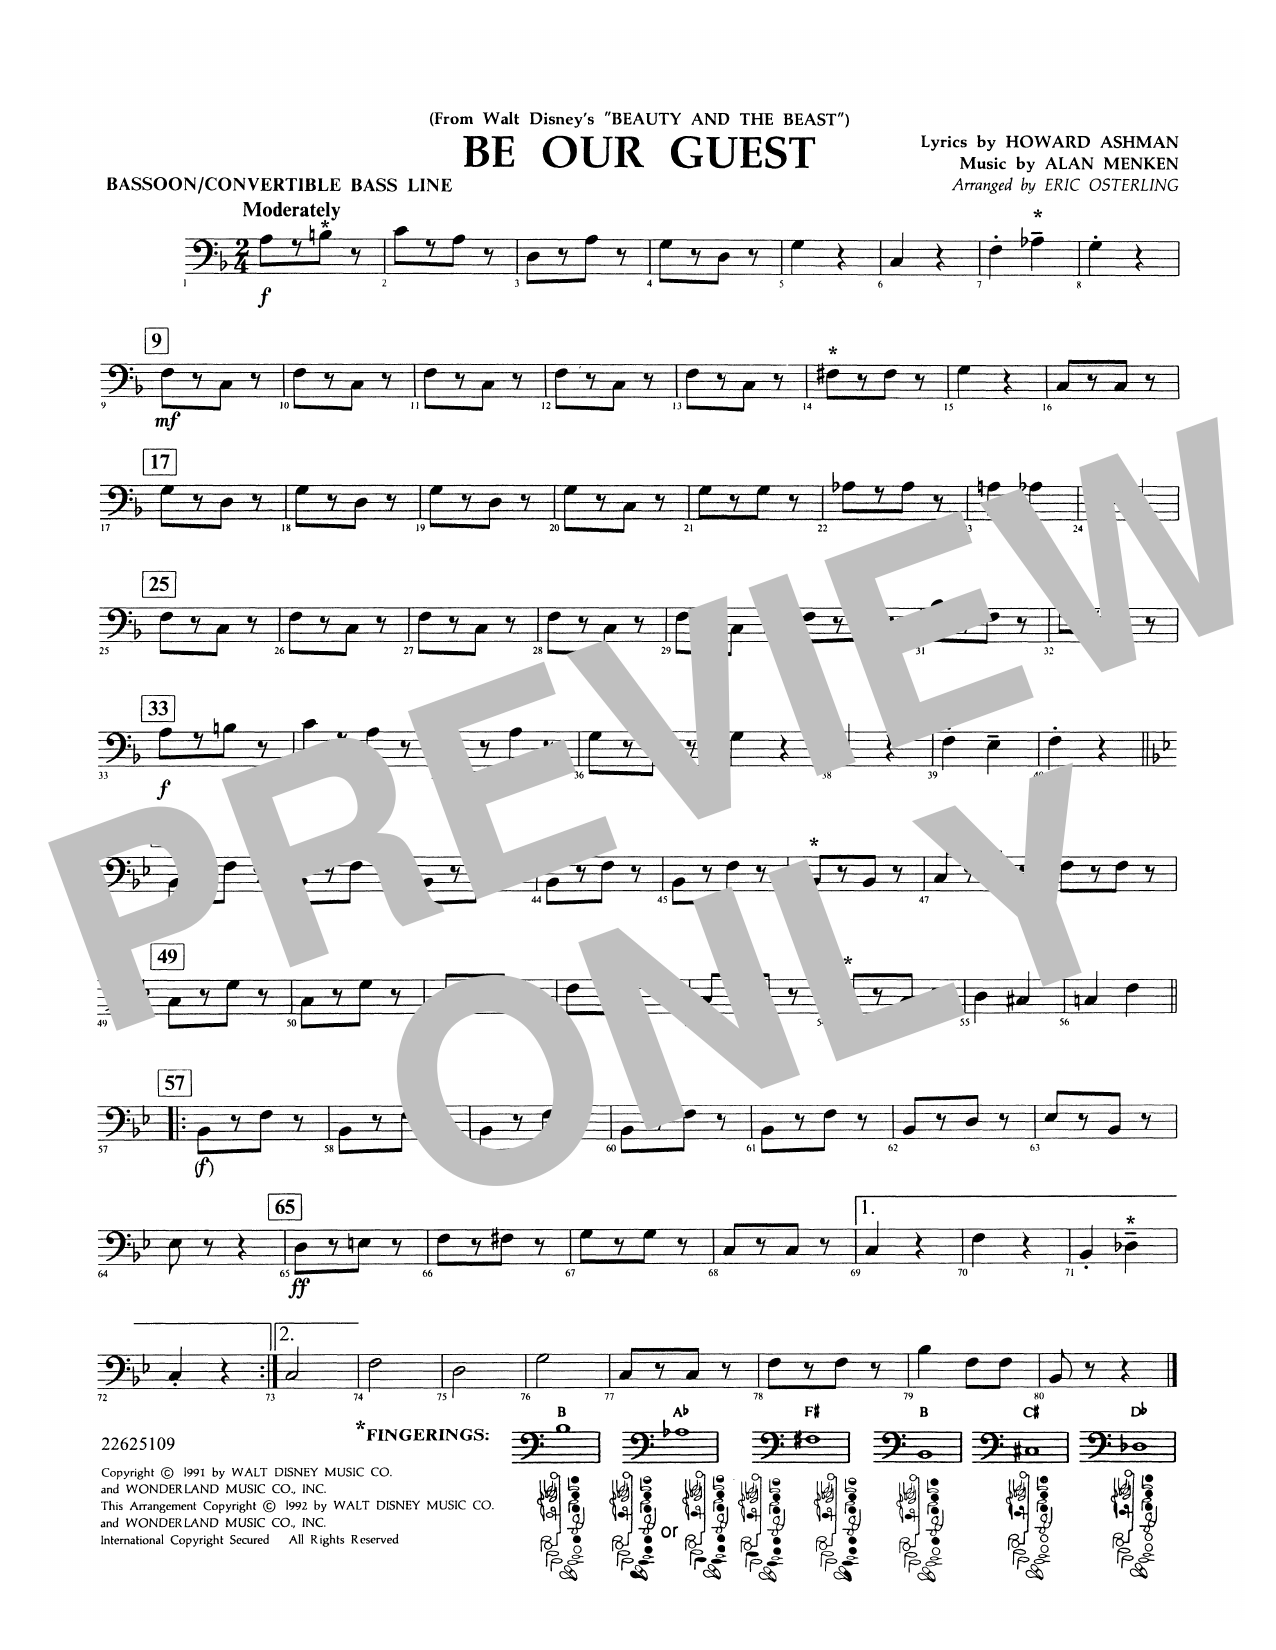 Be Our Guest (from Beauty And The Beast) (arr. Eric Osterling) - Bassoon/Convertible Bass Line Sheet Music